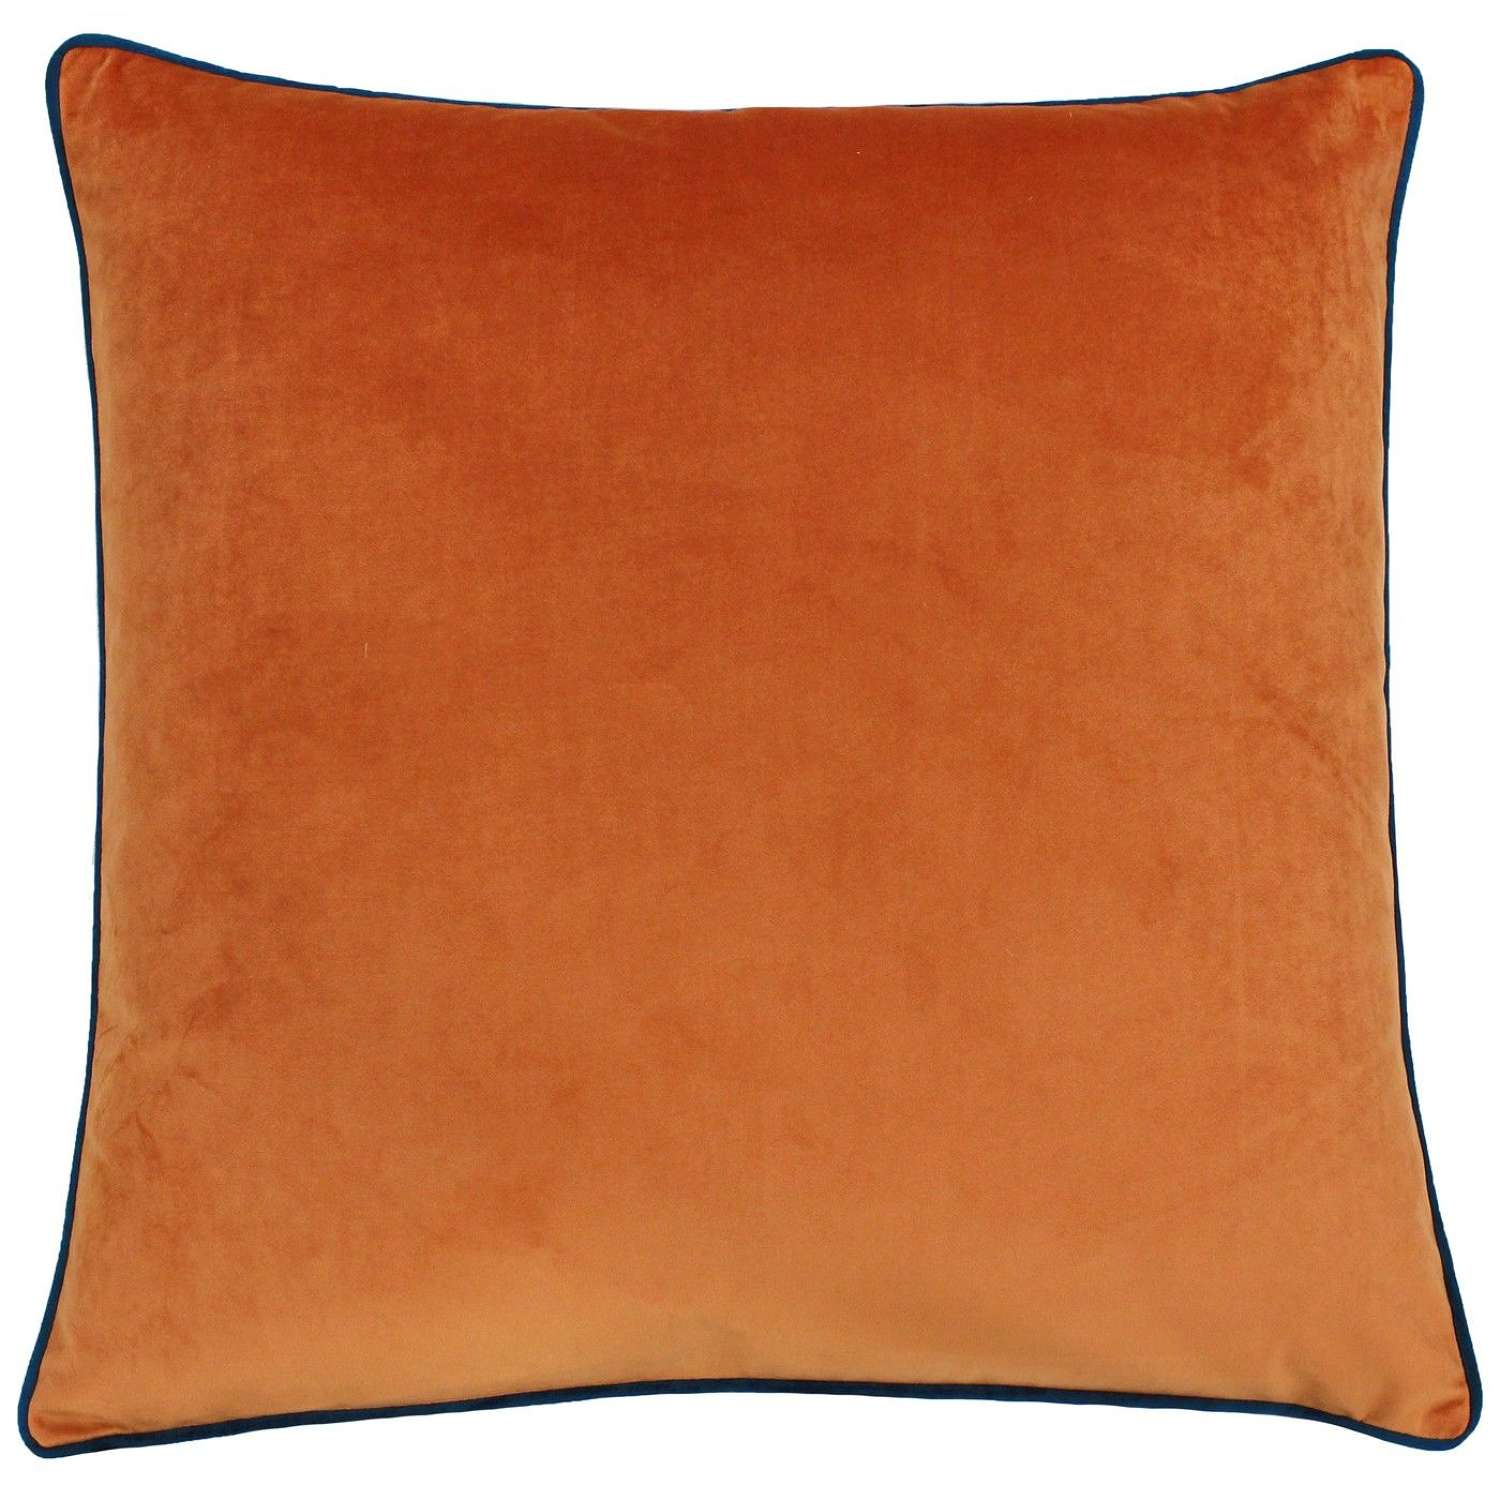 Square Velvet Cushion with Contrast Piping - Tangerine/Teal